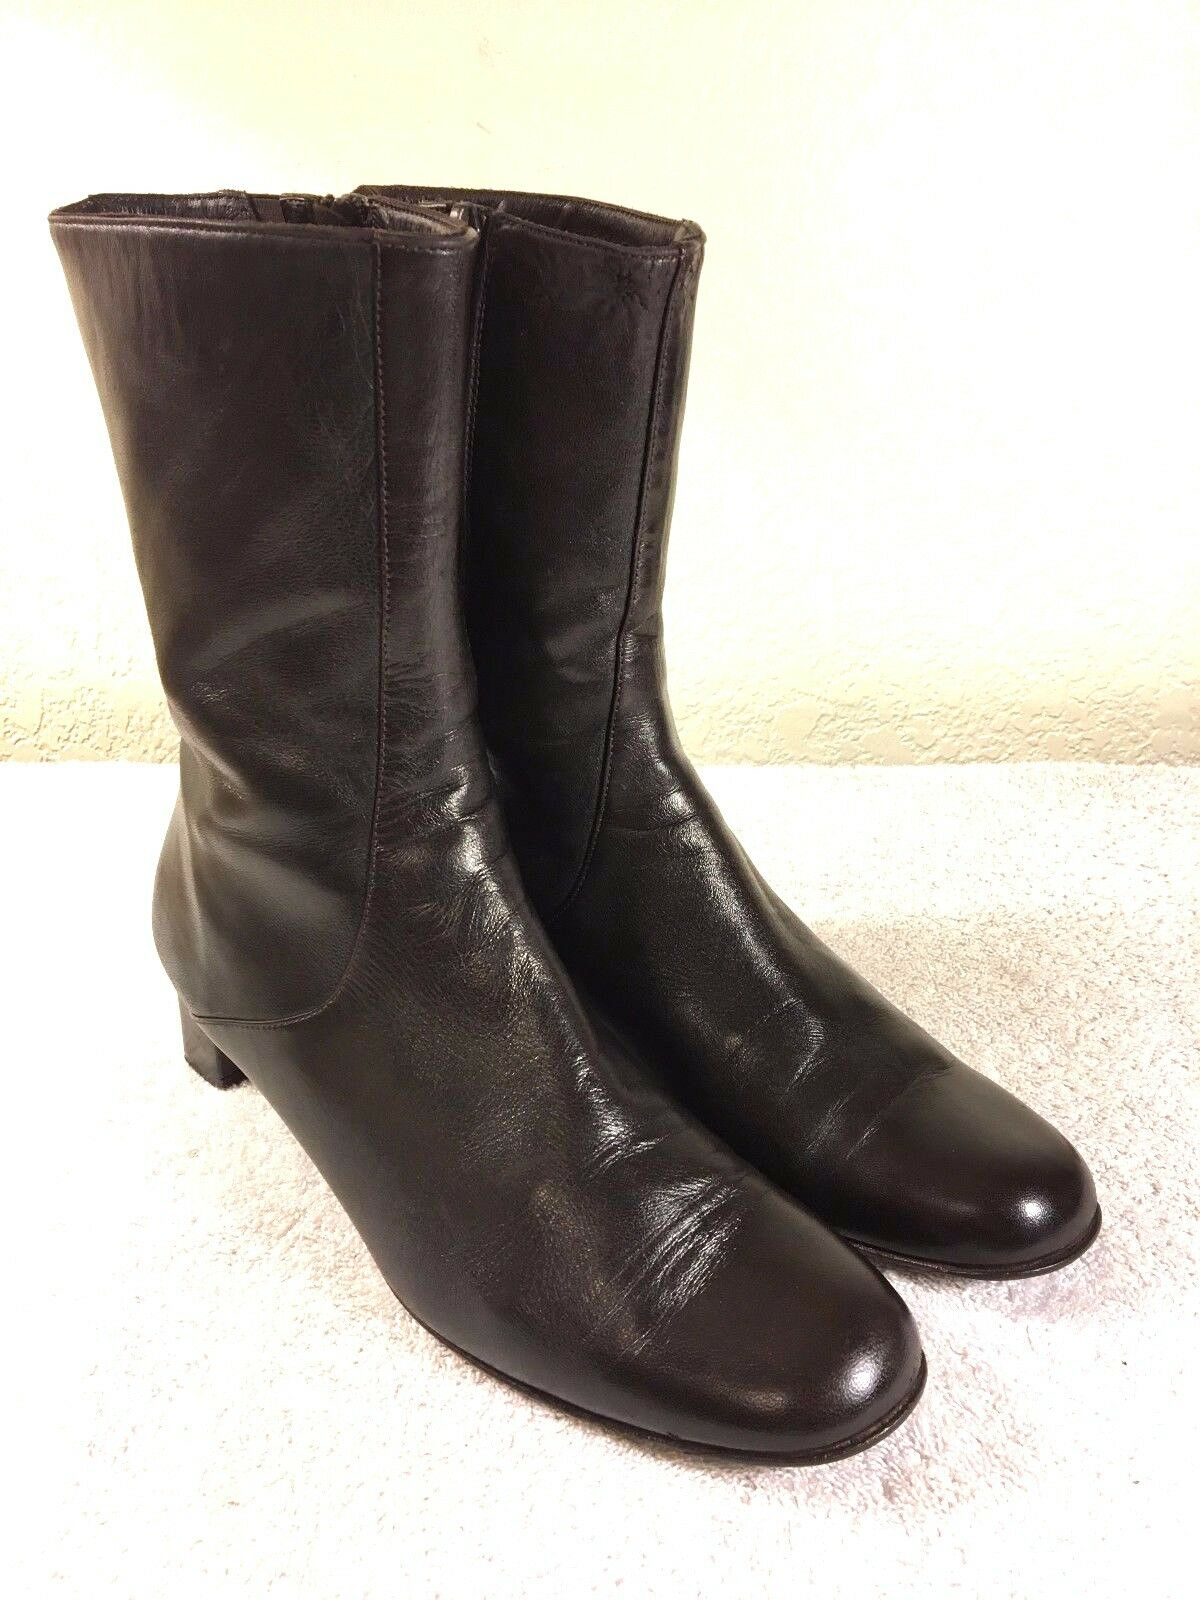 Cole Haan women's  brown leather leather zipper boots szie 8.5 AA Made in Italy